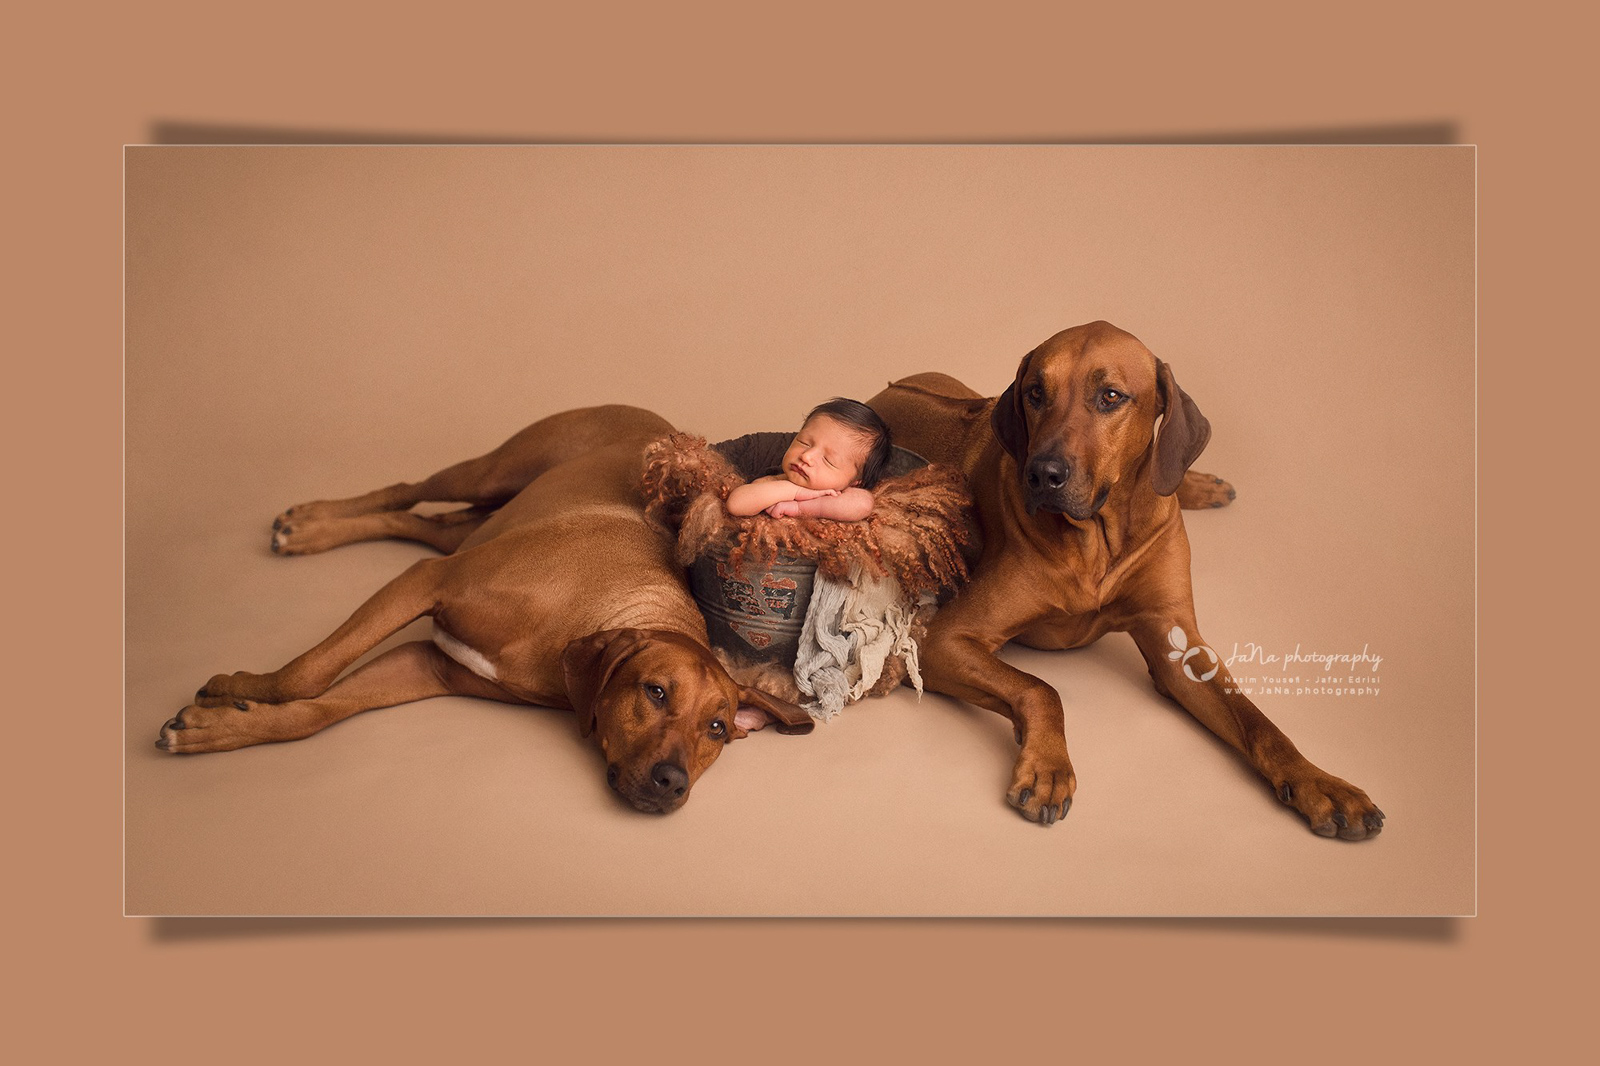 vancouver newborn photography with 2 dogs in a brown setup